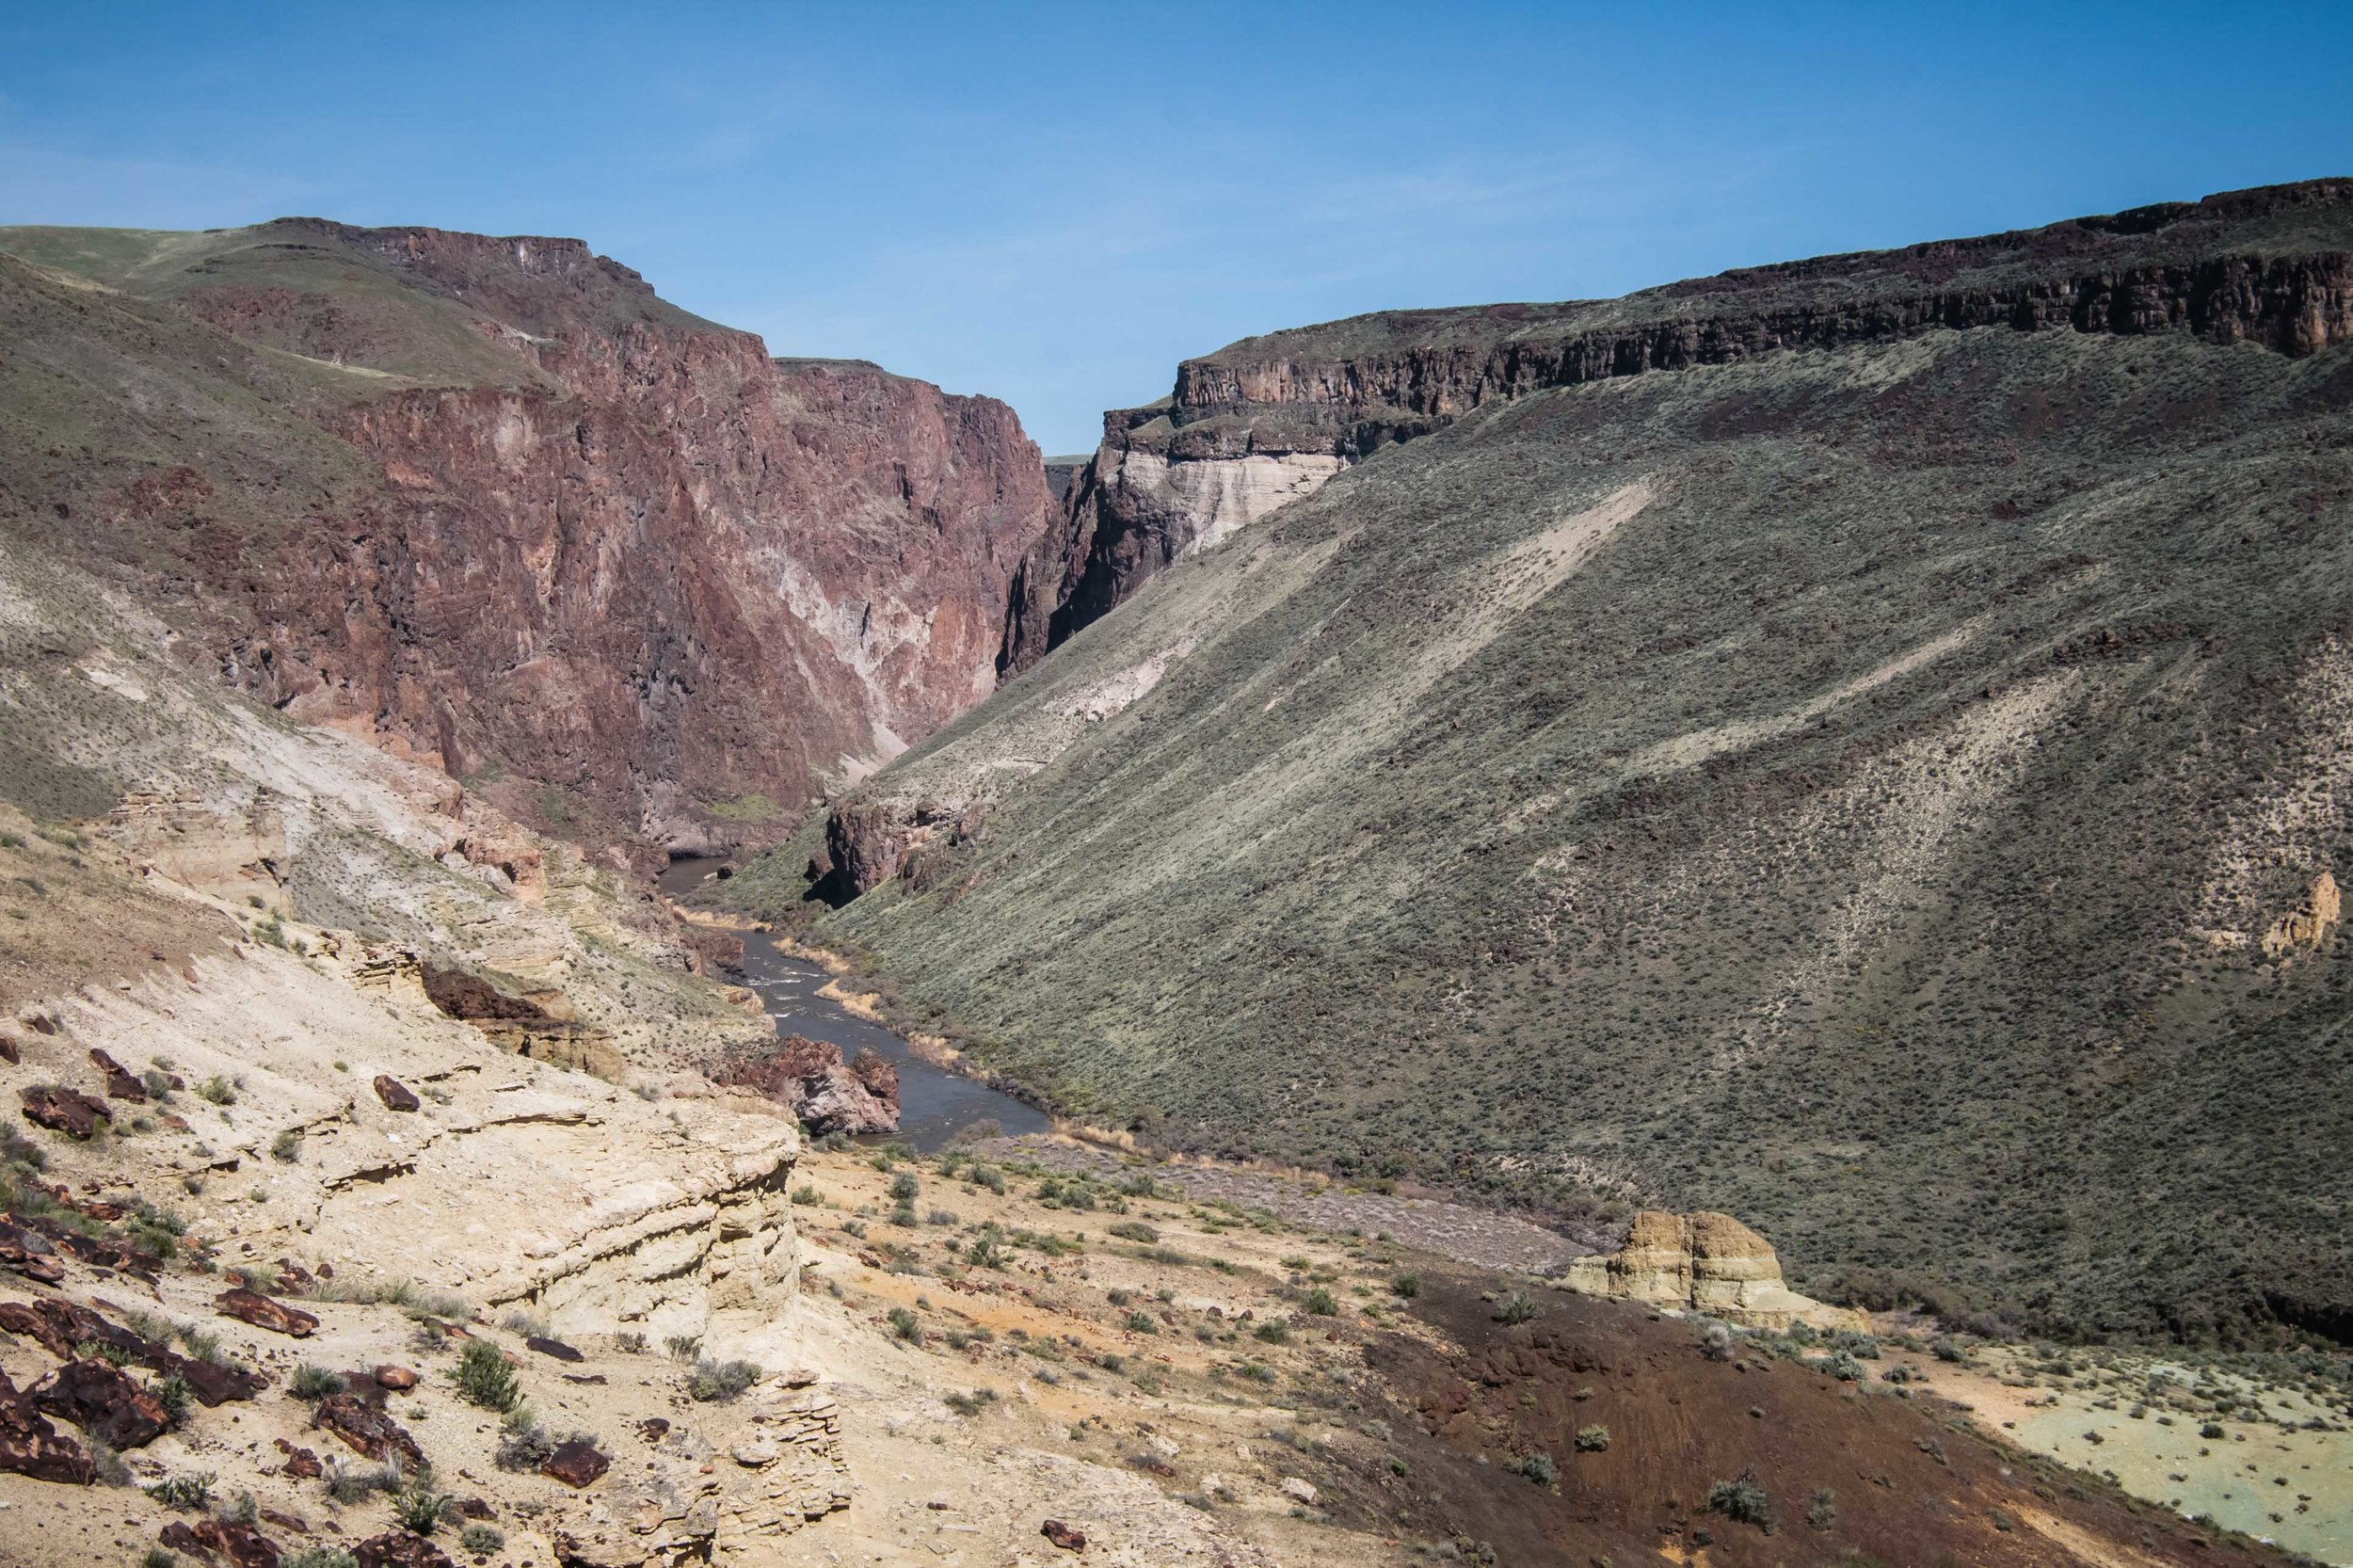 A great view of the canyon down river from our camp that we would paddle through first thing the next morning.